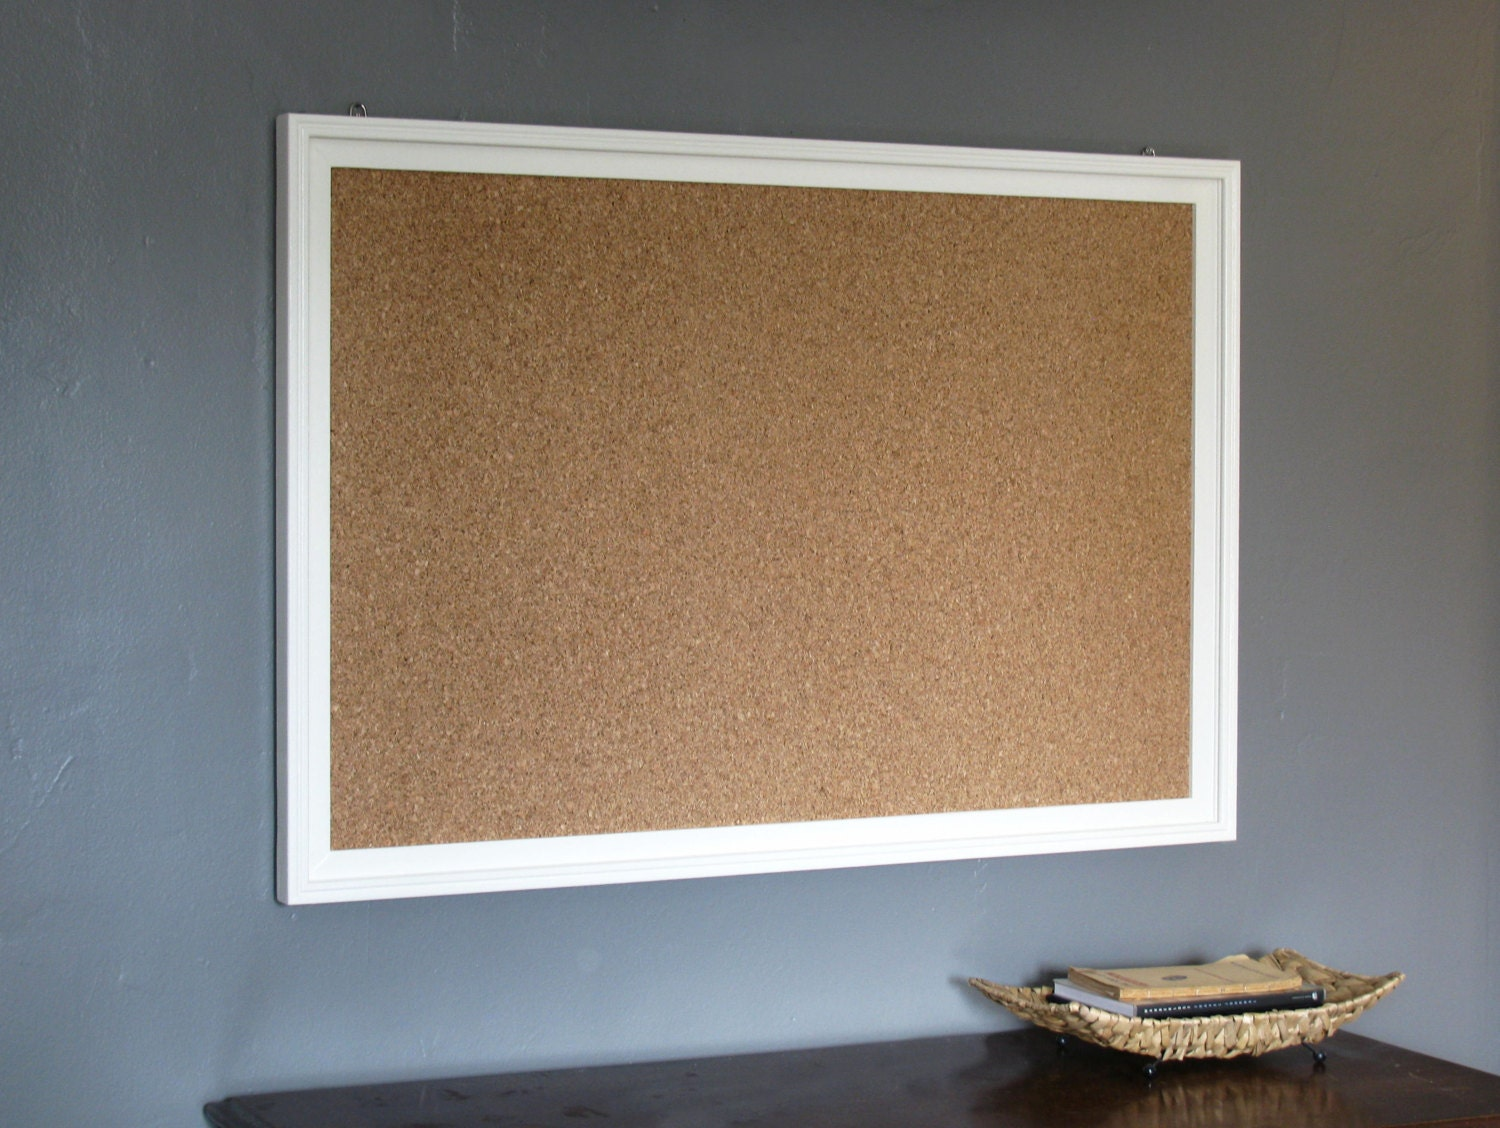 Customizable Wood Frame Cork Board 24 X 36 By